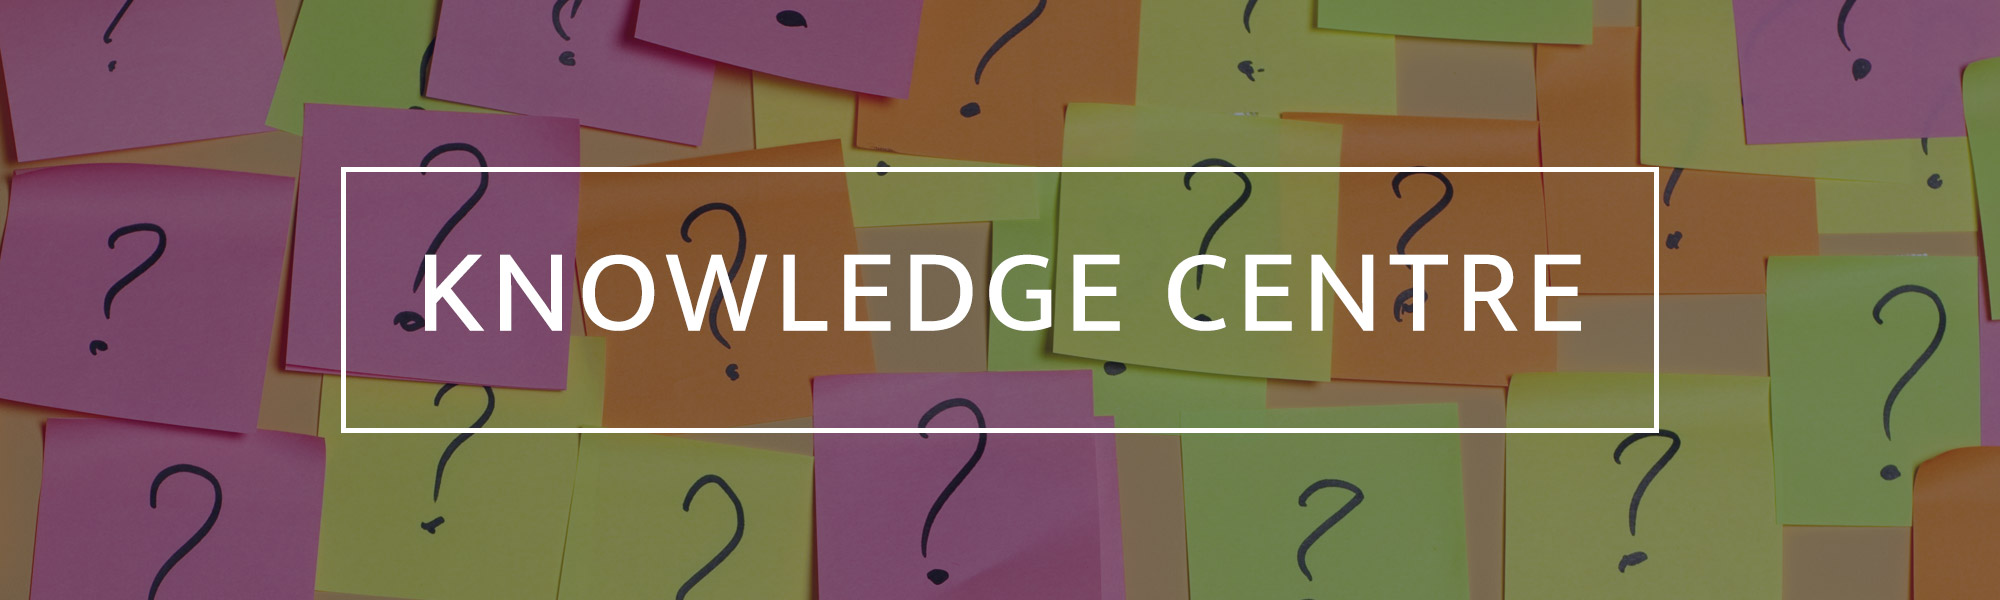 Knowledge Centre Header 2